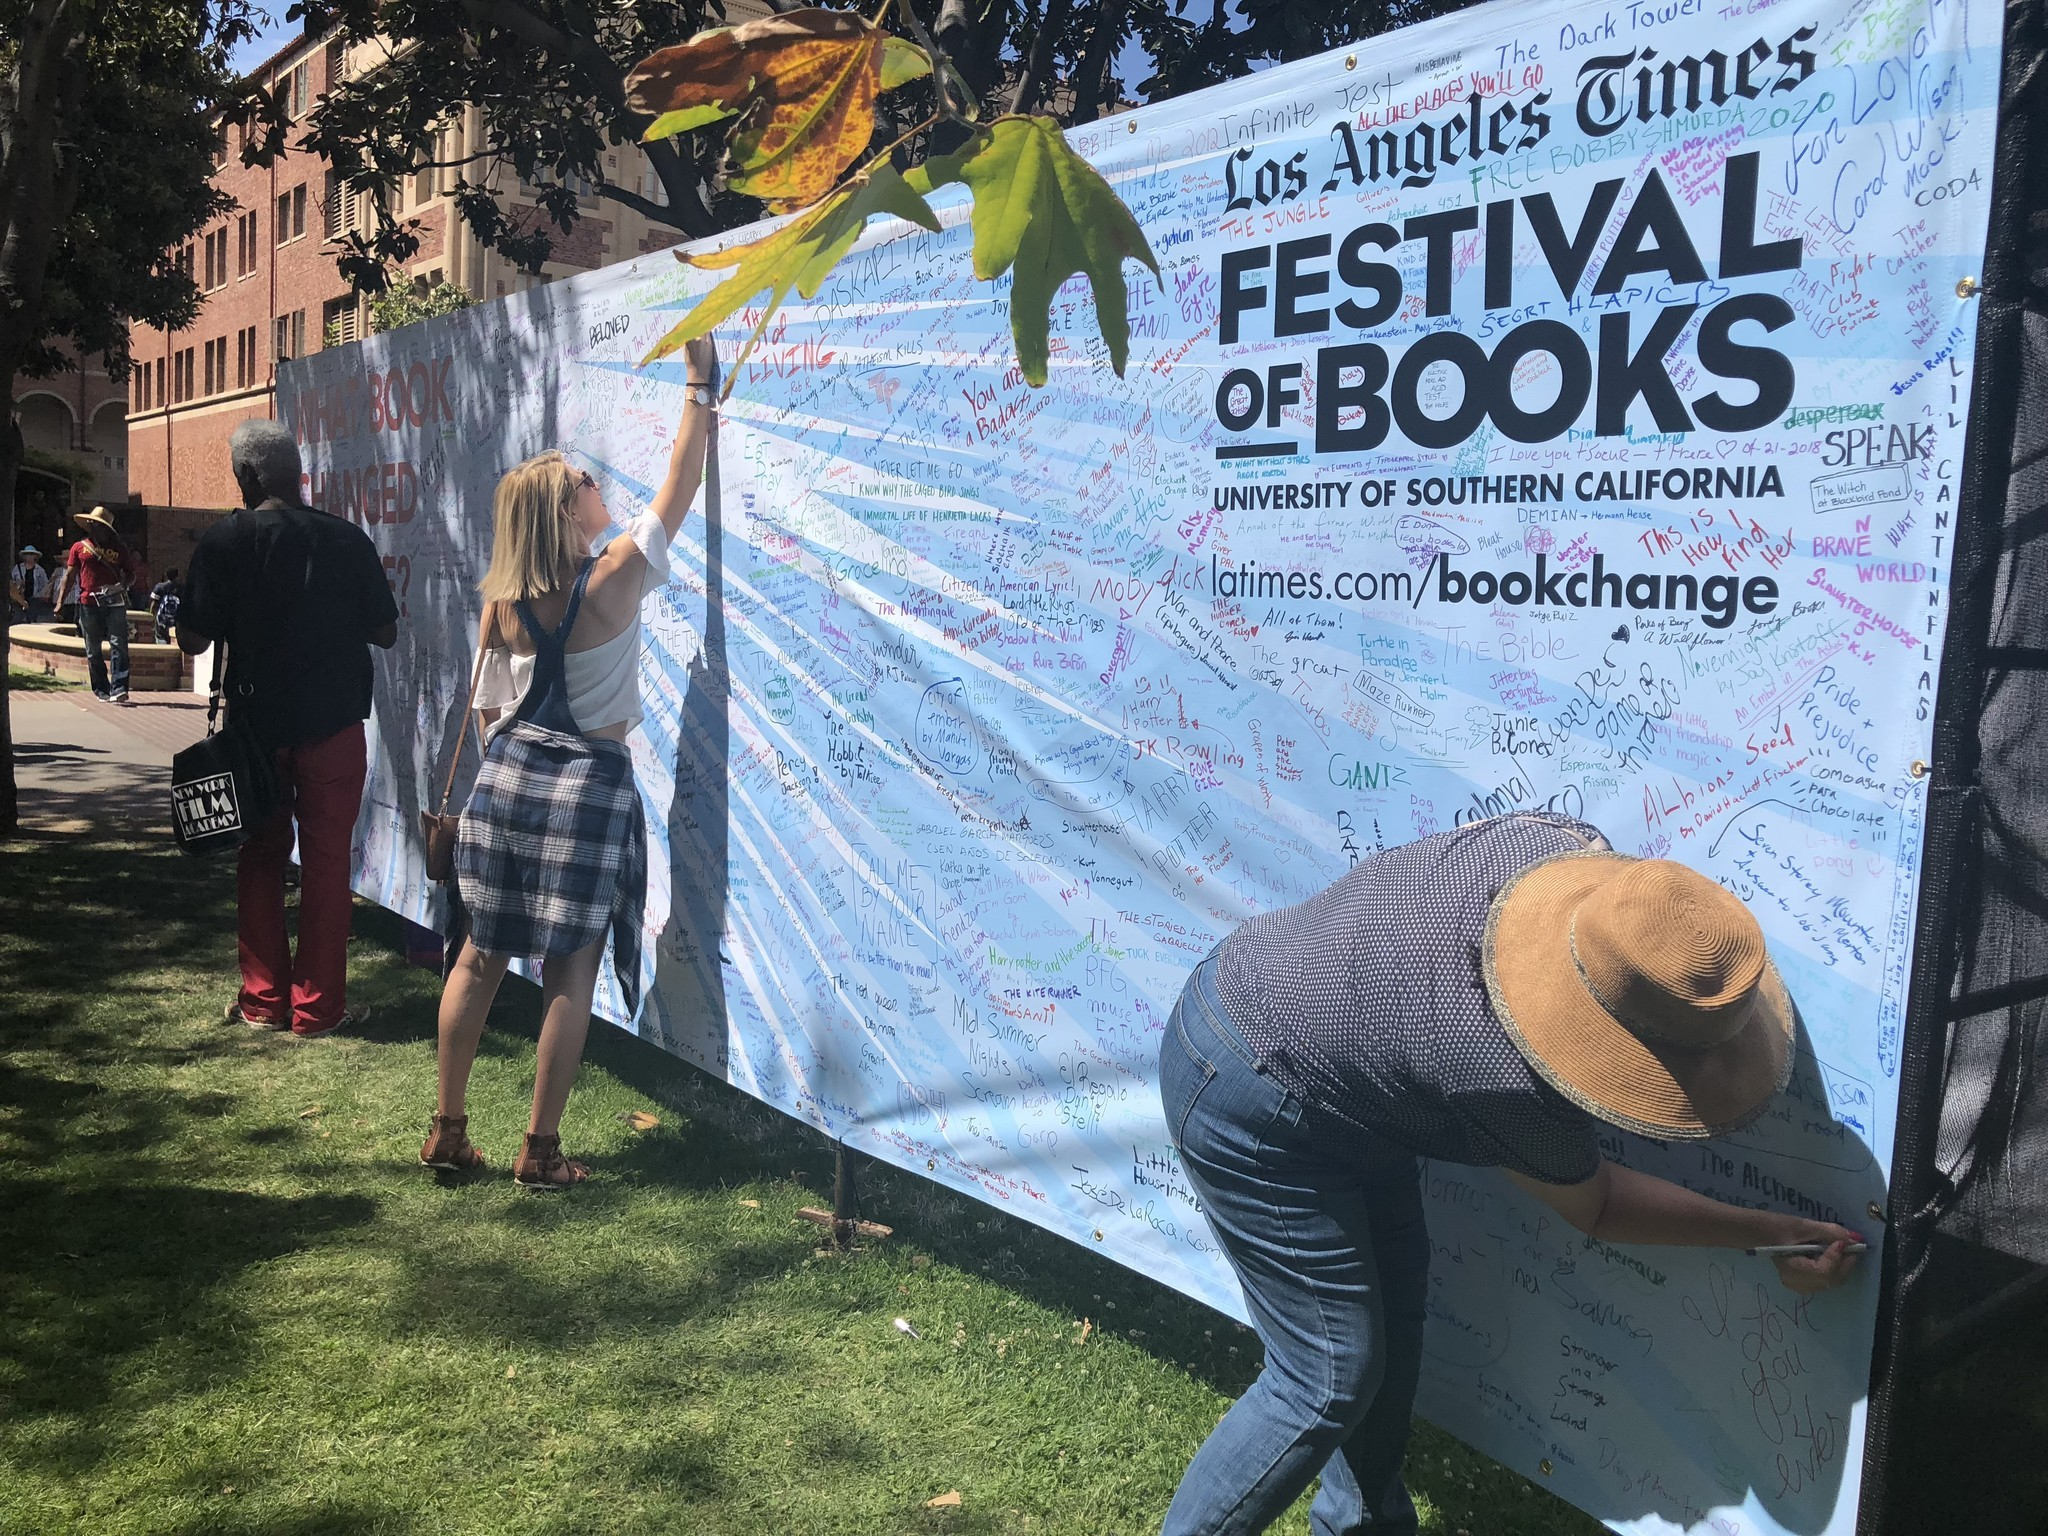 Festival Of Books 2020.What Book Changed Your Life Los Angeles Times